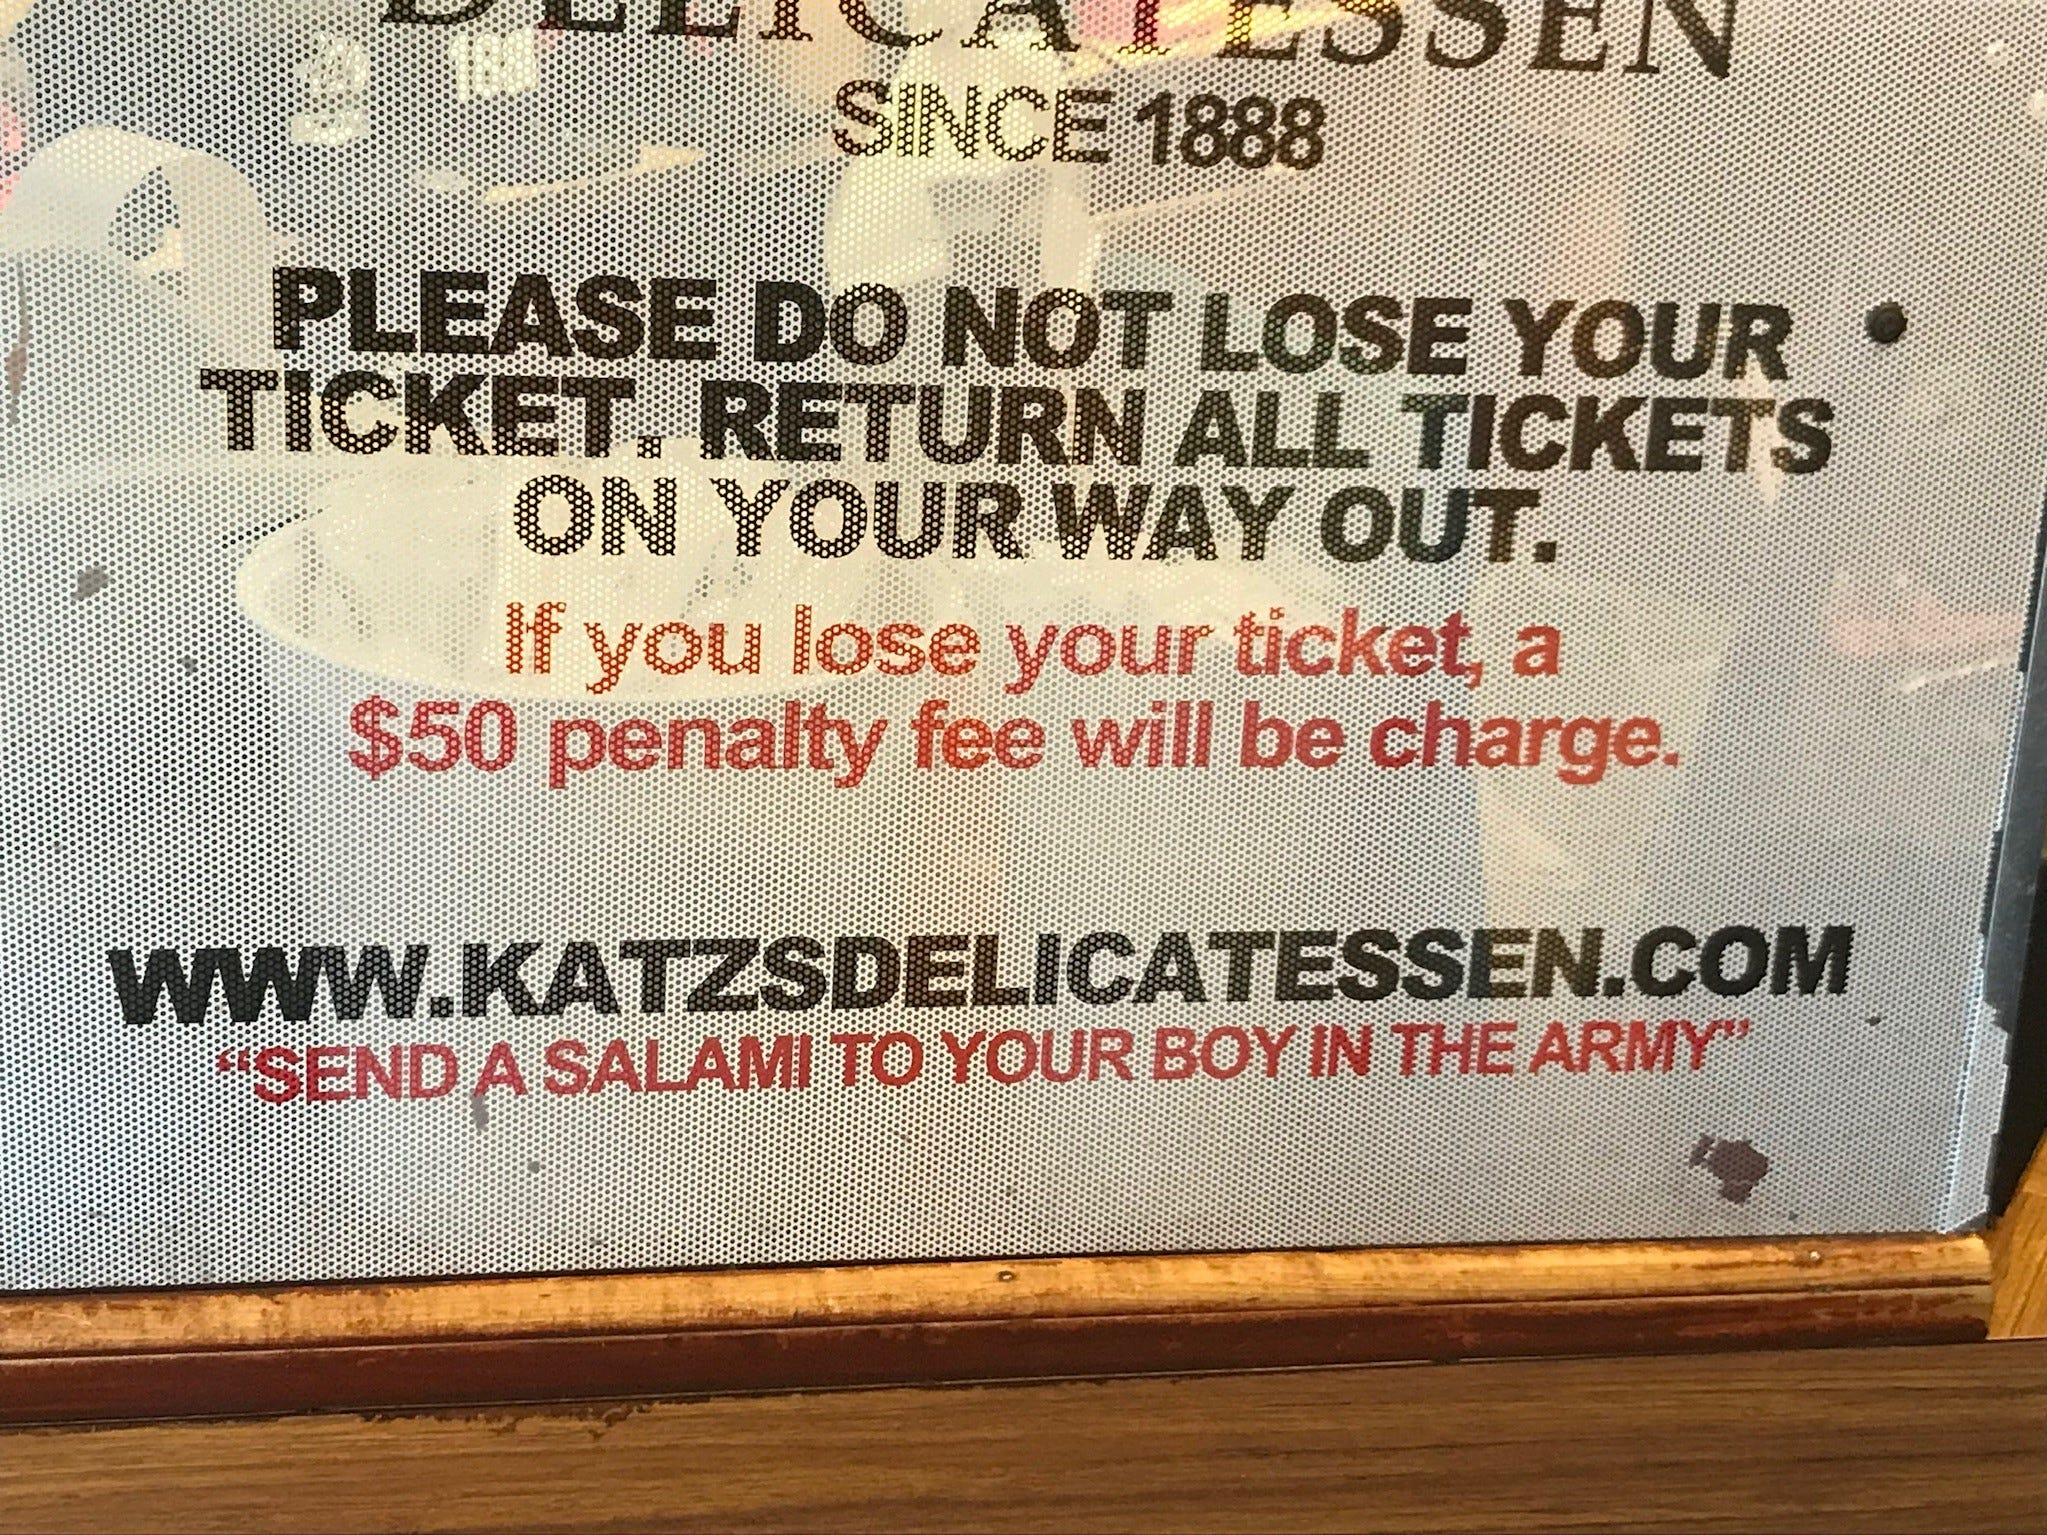 All customers receive a ticket on which their orders are totaled, and must hand it over to exit – or face a $50 fee.